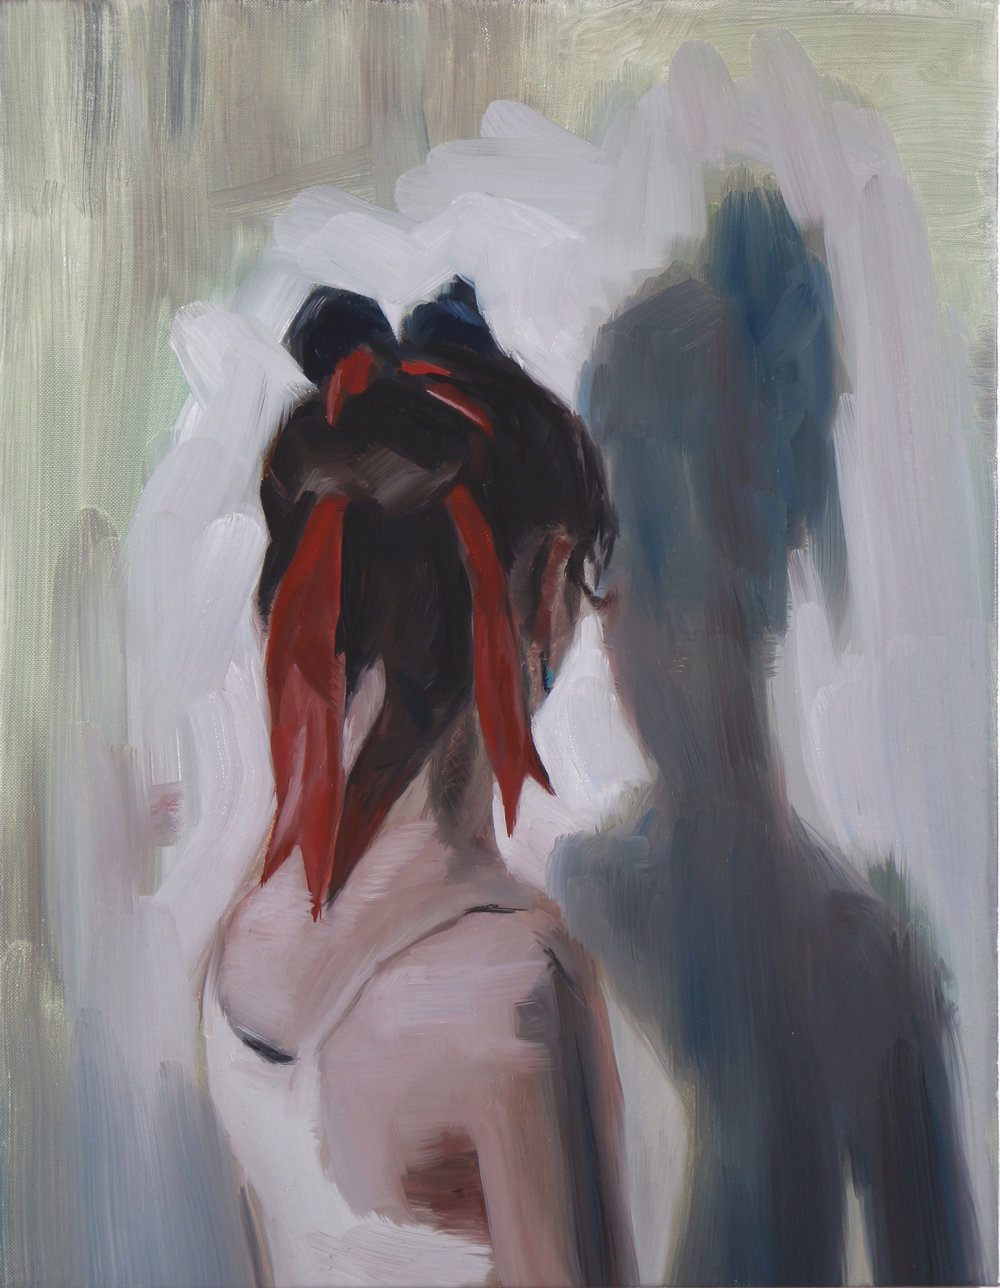 The Red Ribbon, Oil on linen, 45 x 35cm, 2016